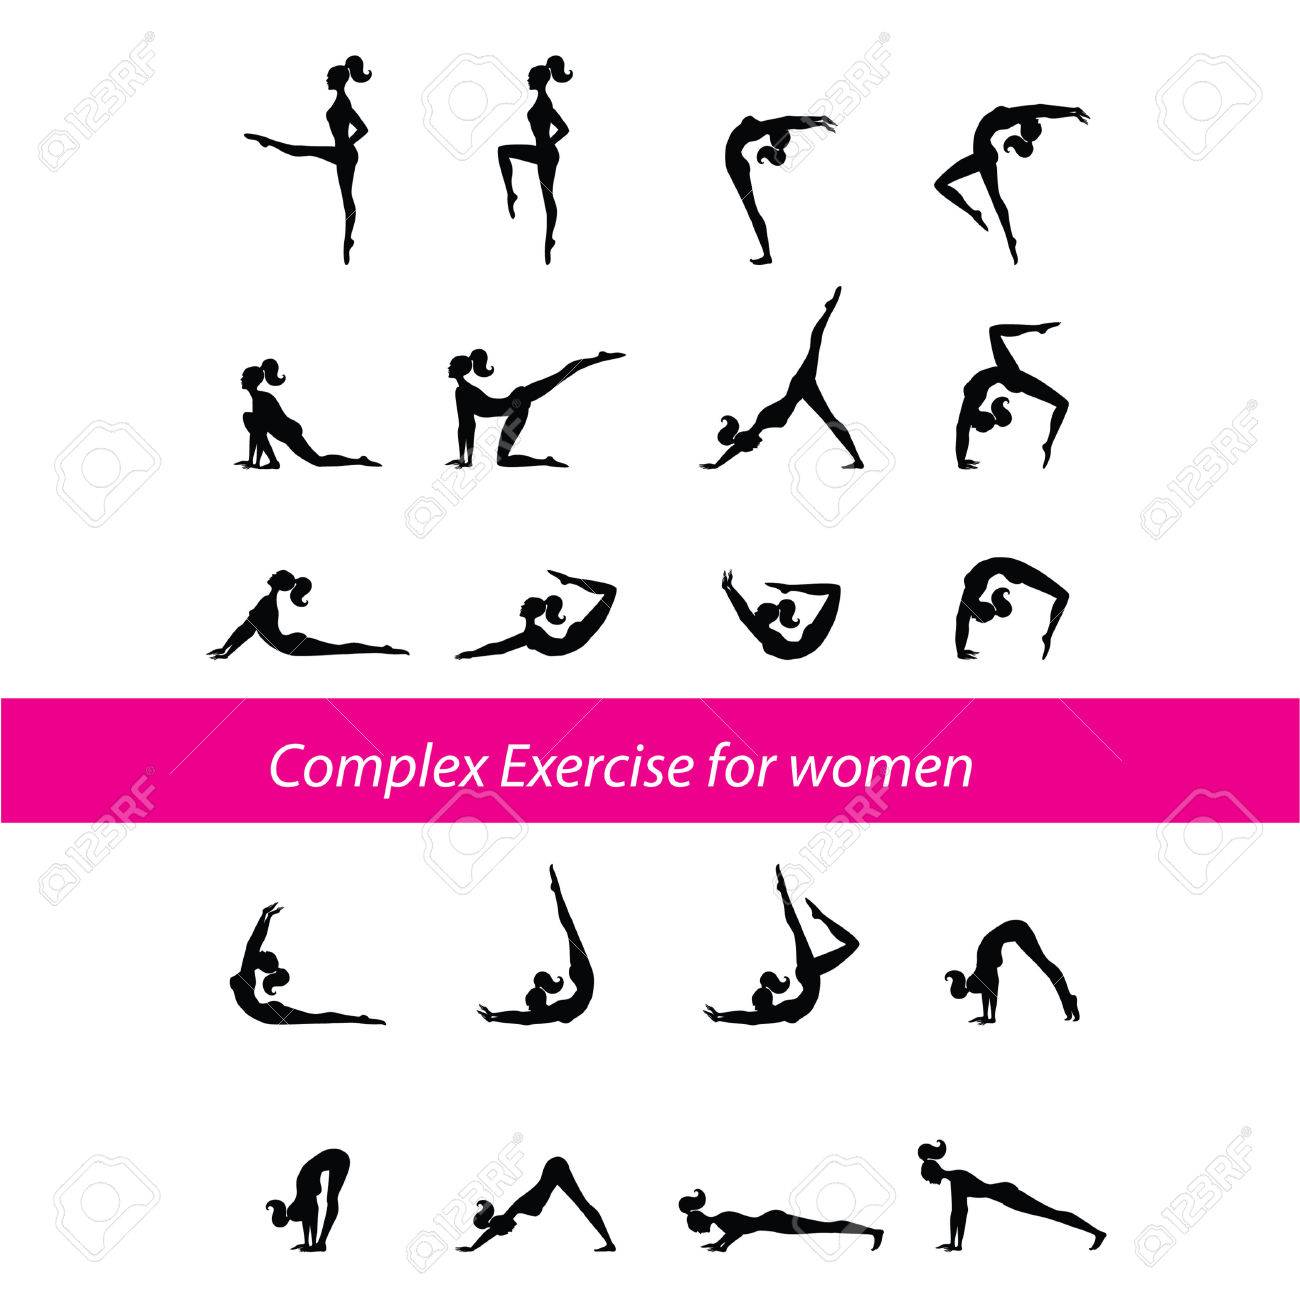 Complex Exercise for women Stock Vector - 8977566